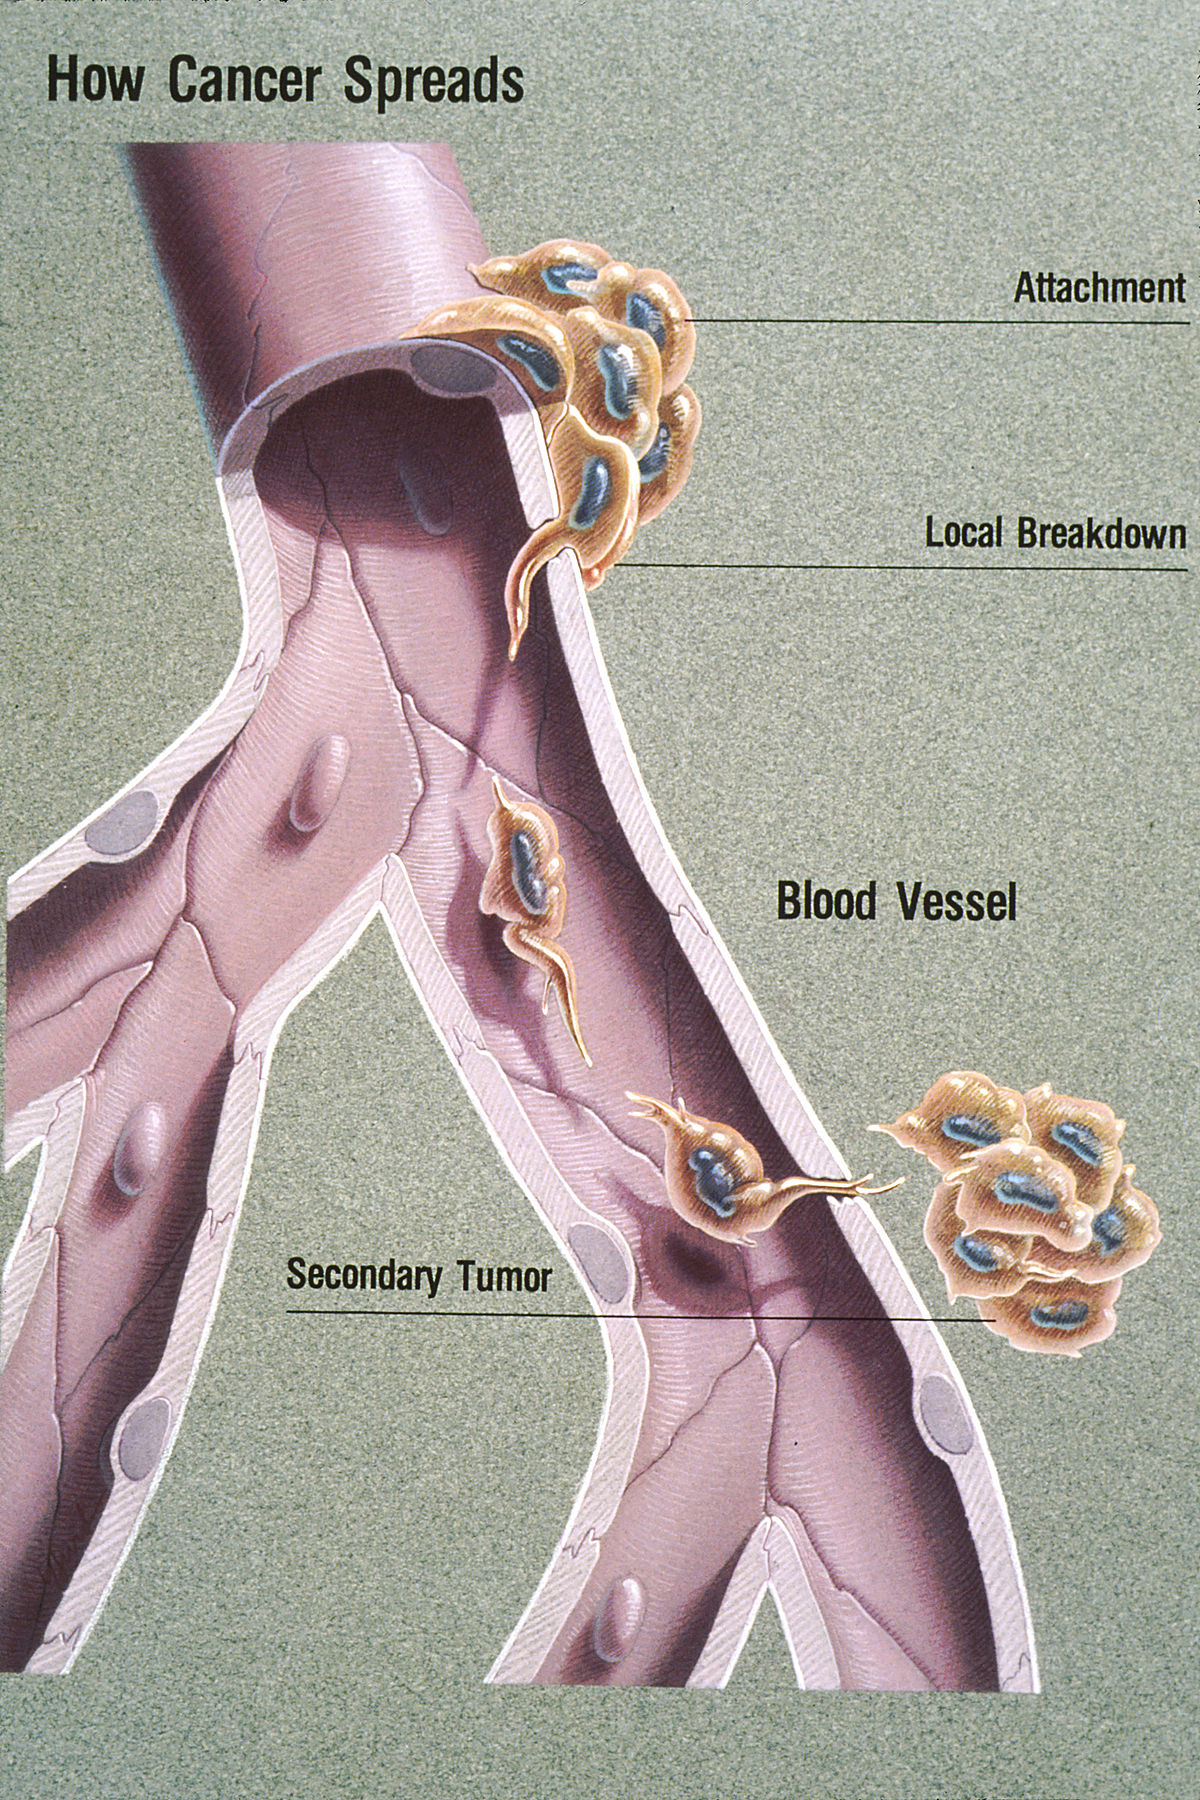 metastatic cancer curable